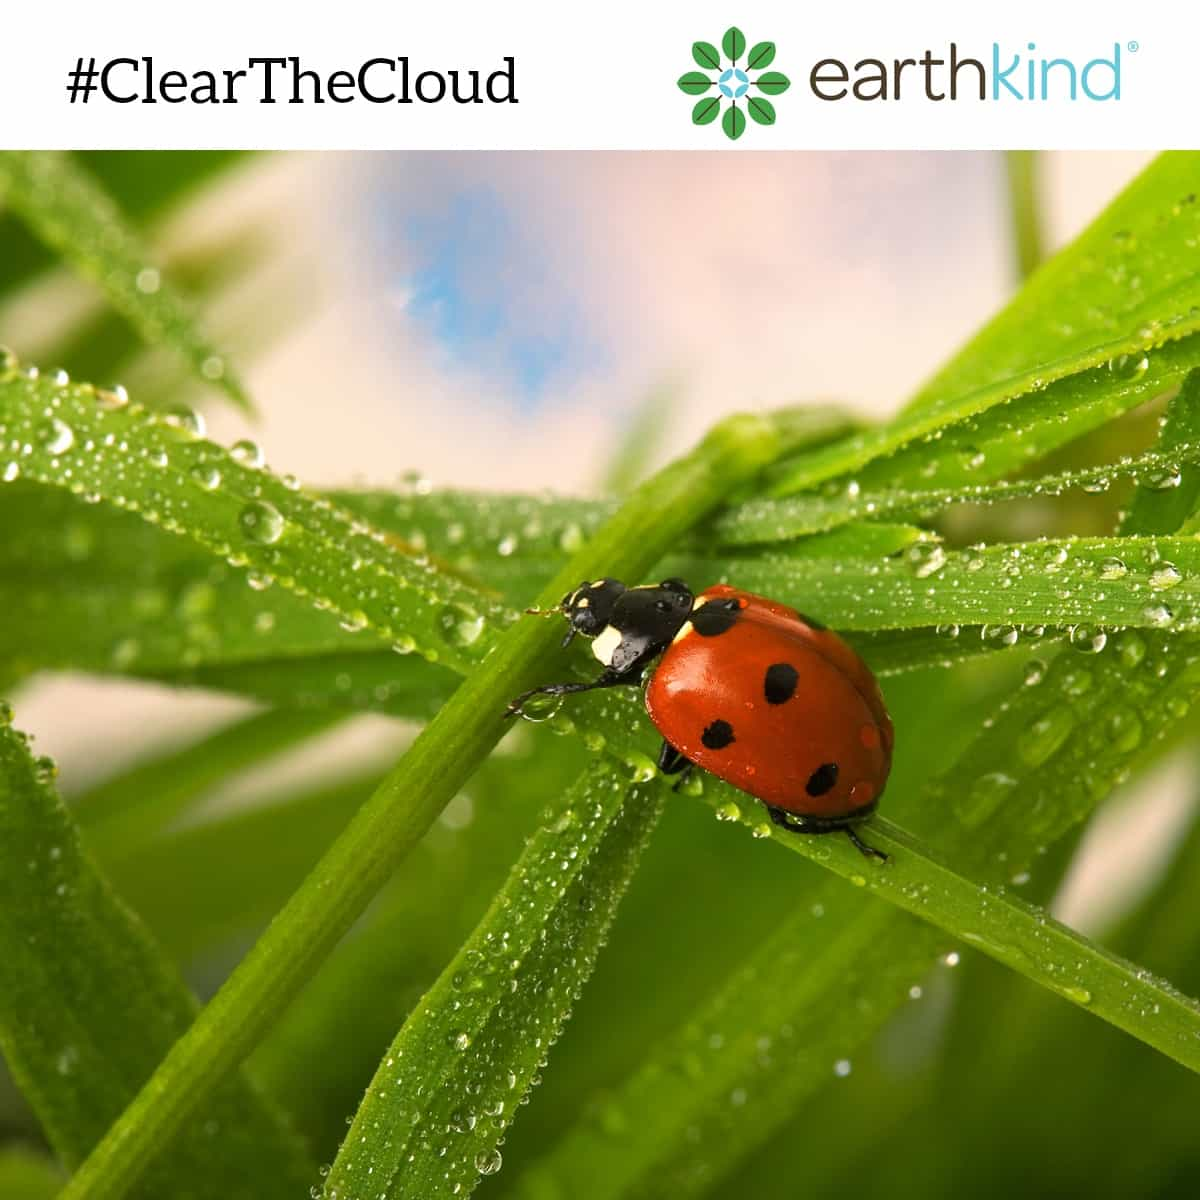 #ClearTheCloud with earthkind